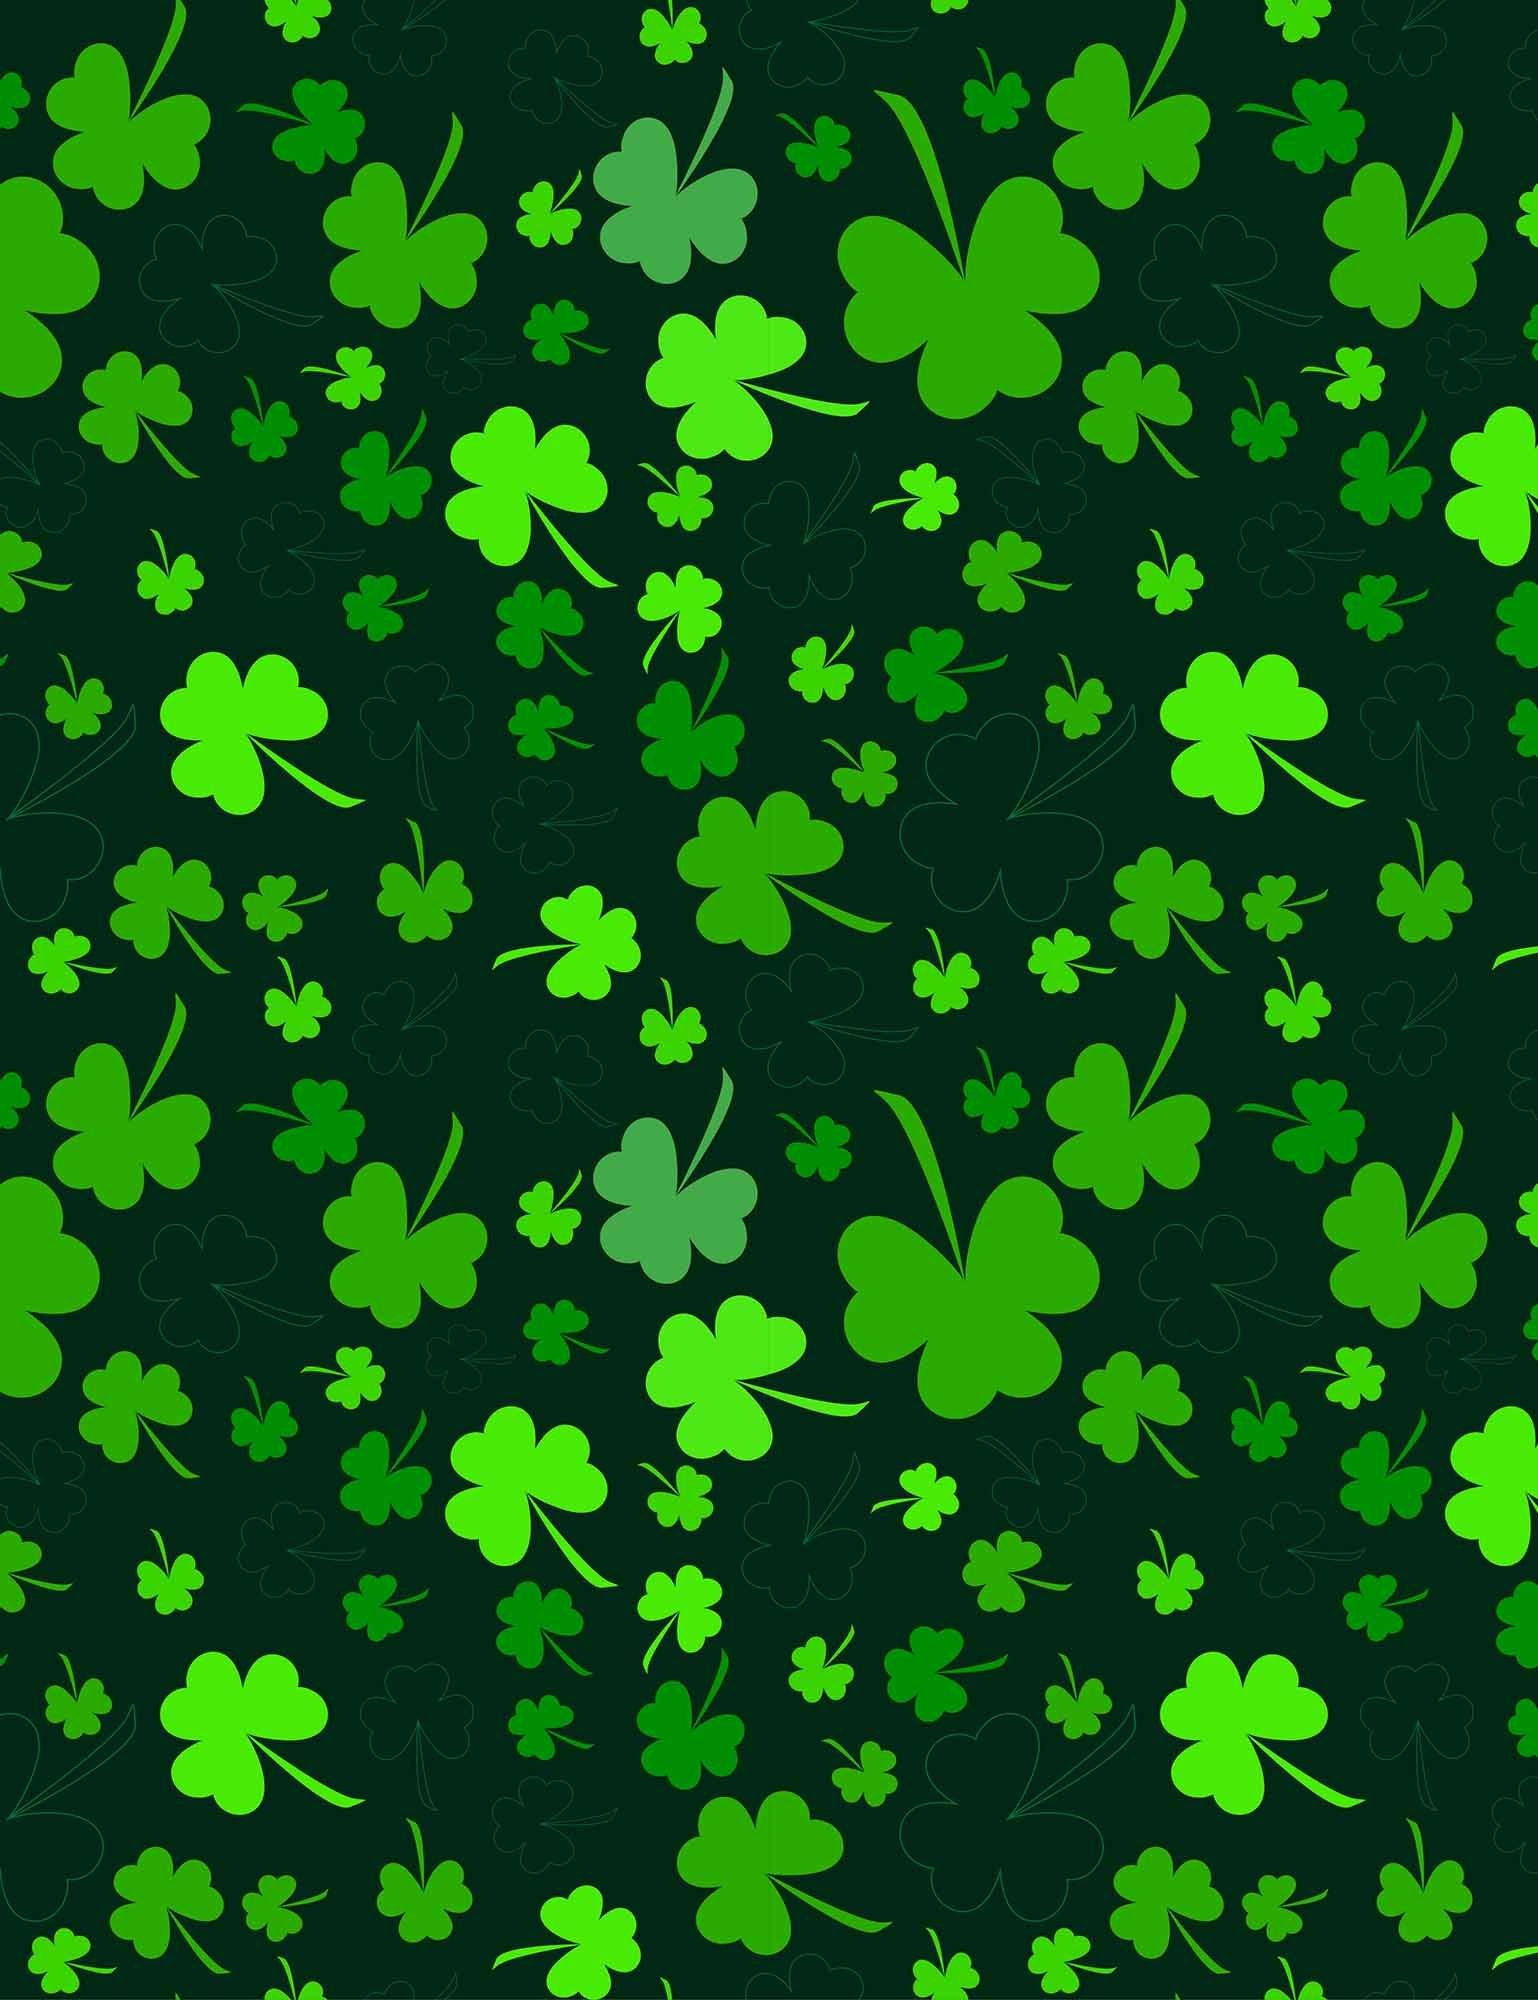 Green Clover Printed On Black Background For St Patrick S